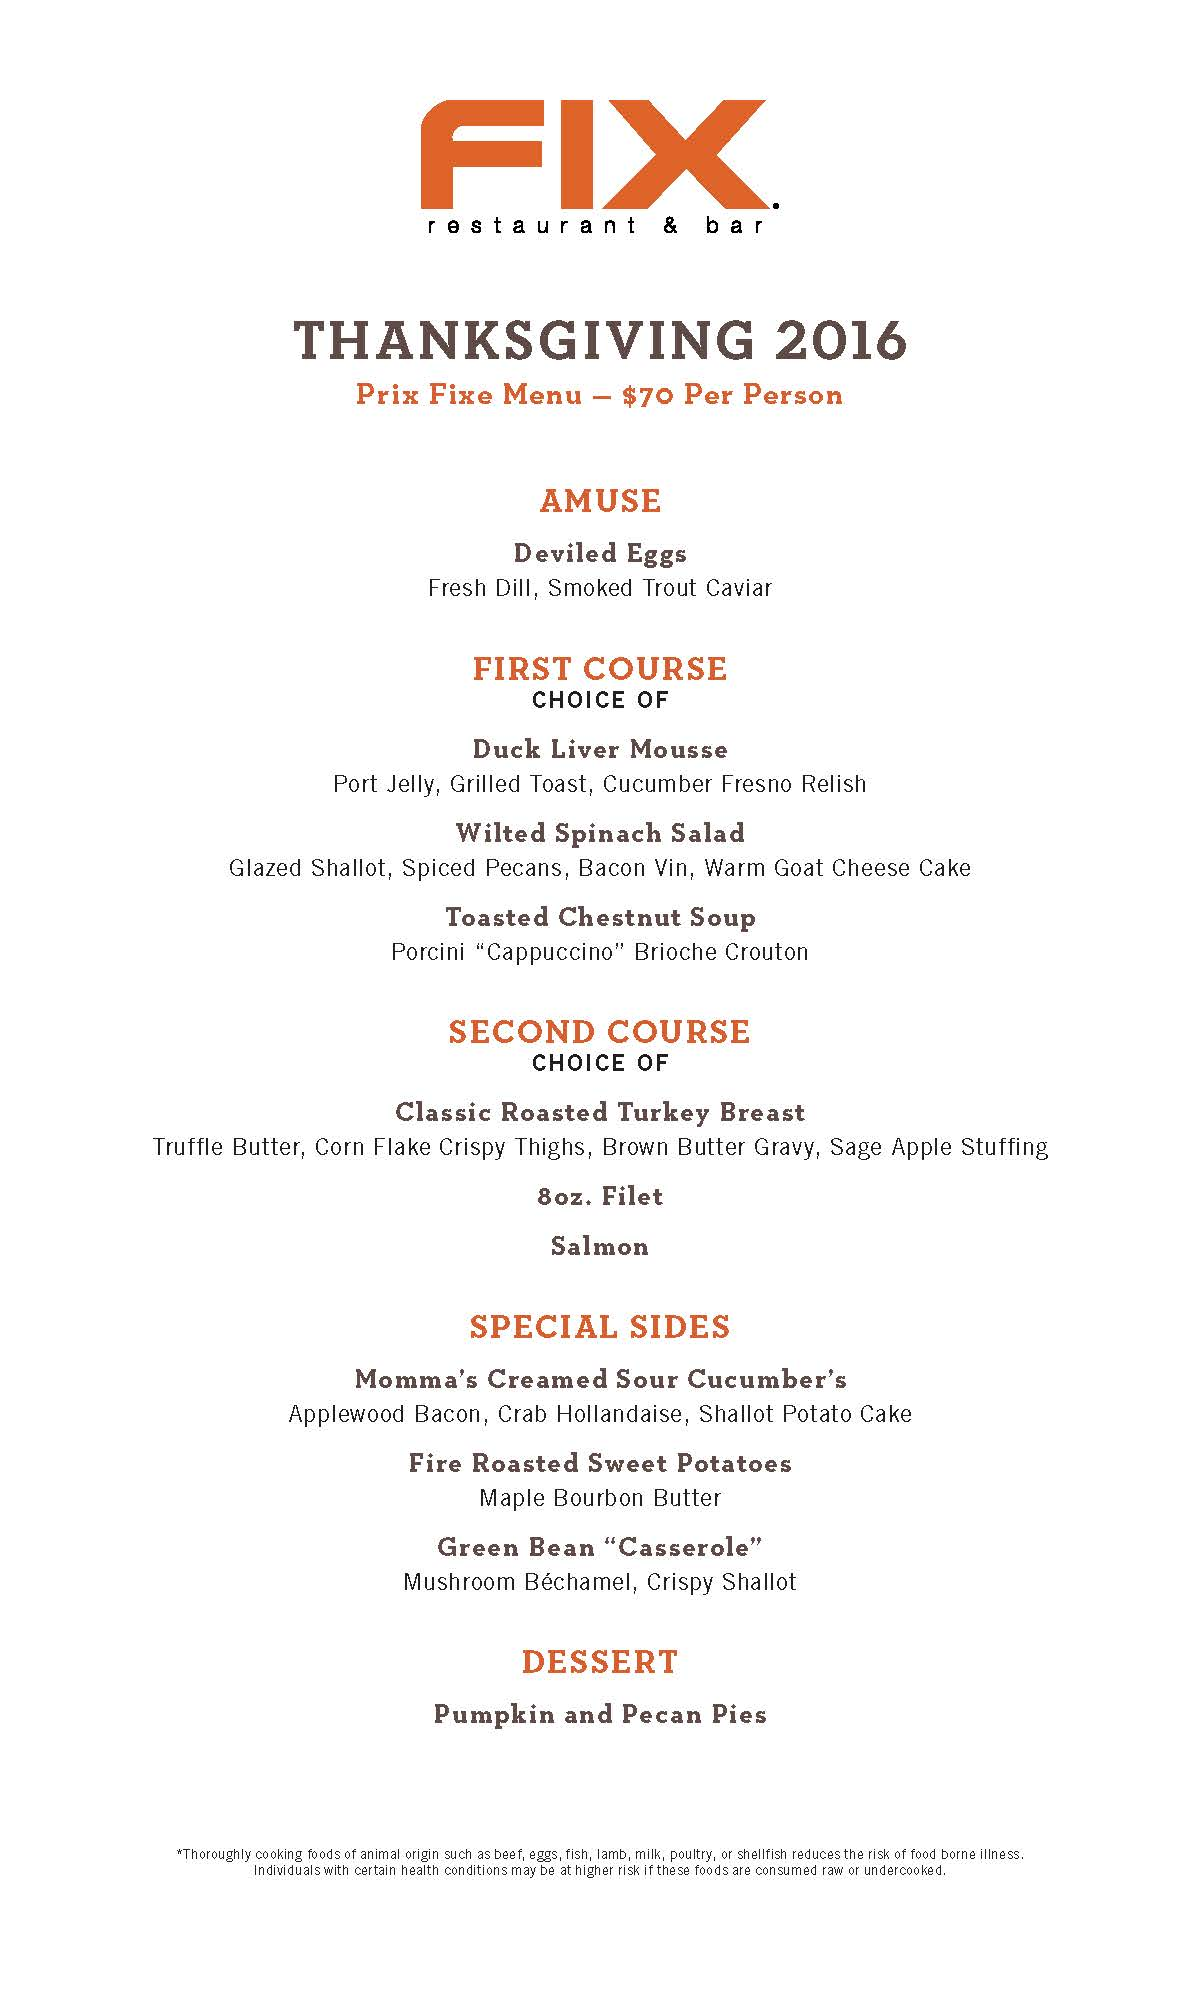 Thanksgiving Prix Fixe Menu Fix Restaurant Amp Bar Las Vegas